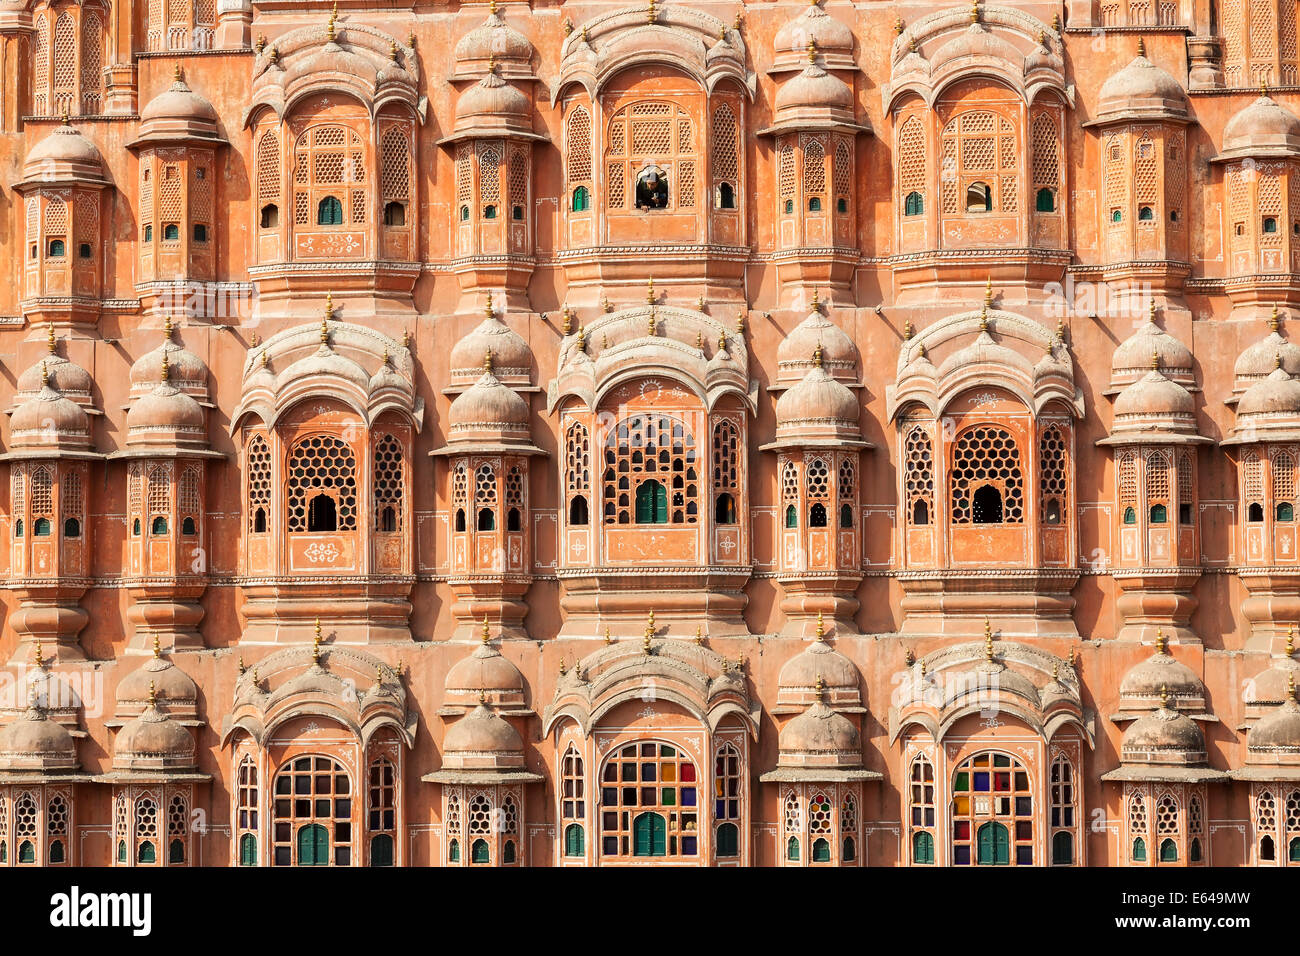 Palais des Vents (Hawa Mahal), Jaipur, Rajasthan, Inde Photo Stock